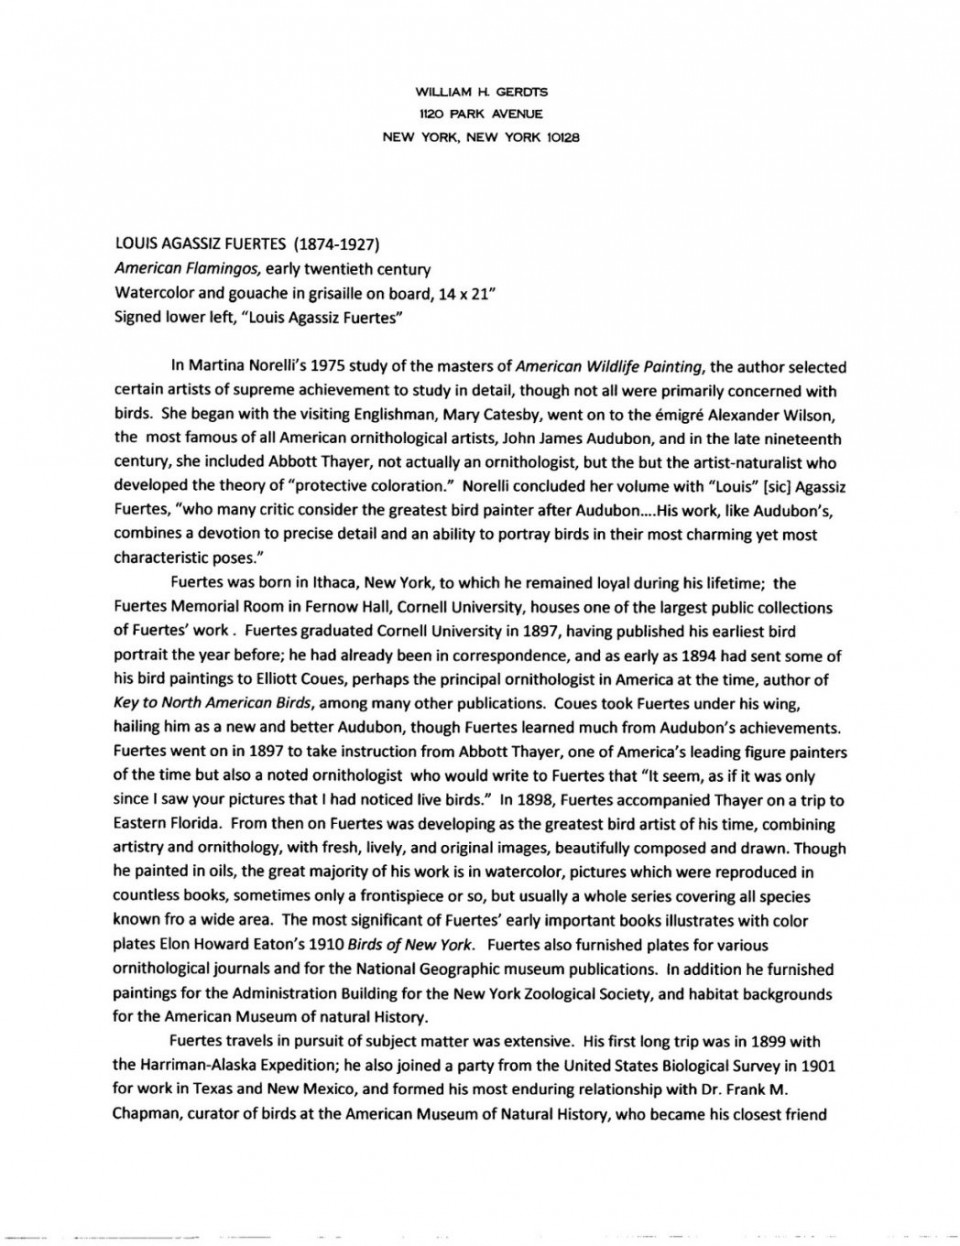 013 I Belive Essays Sample High School Admission Graduate This Believe 1048x1361 Surprising About Sports Ideas 960